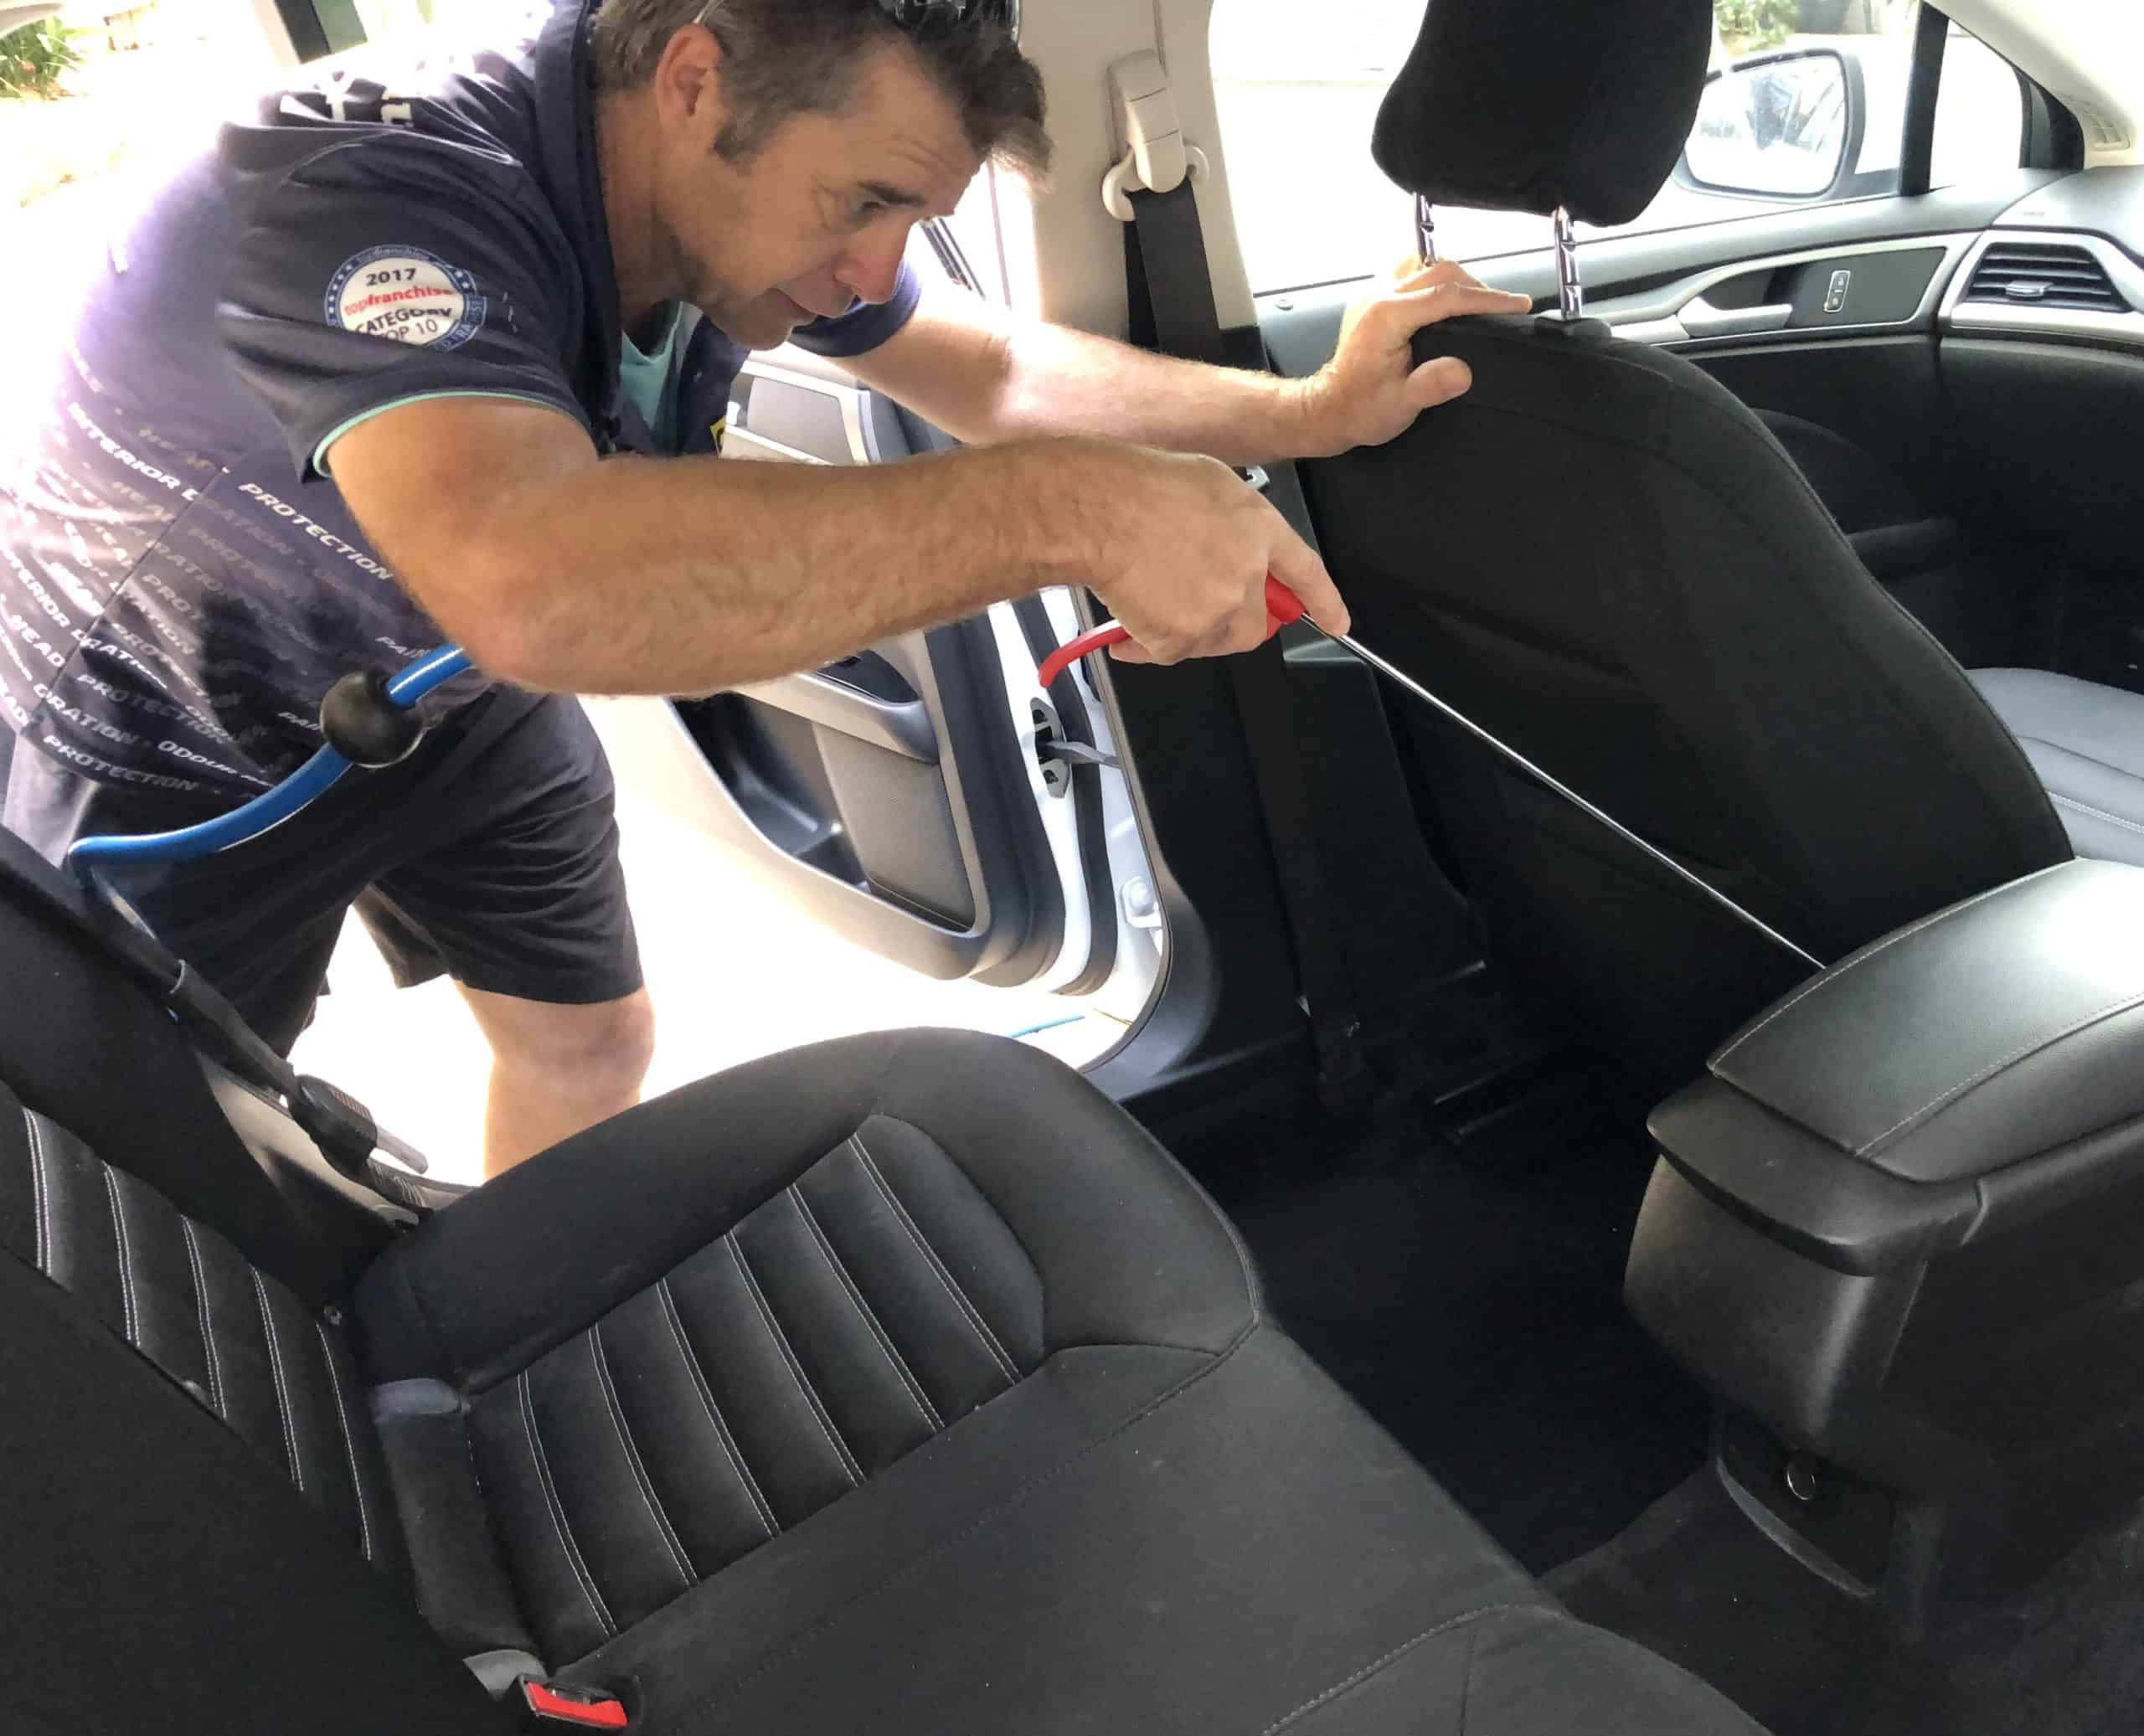 cleaning in between car seats with an air gun to get into every nook and cranny